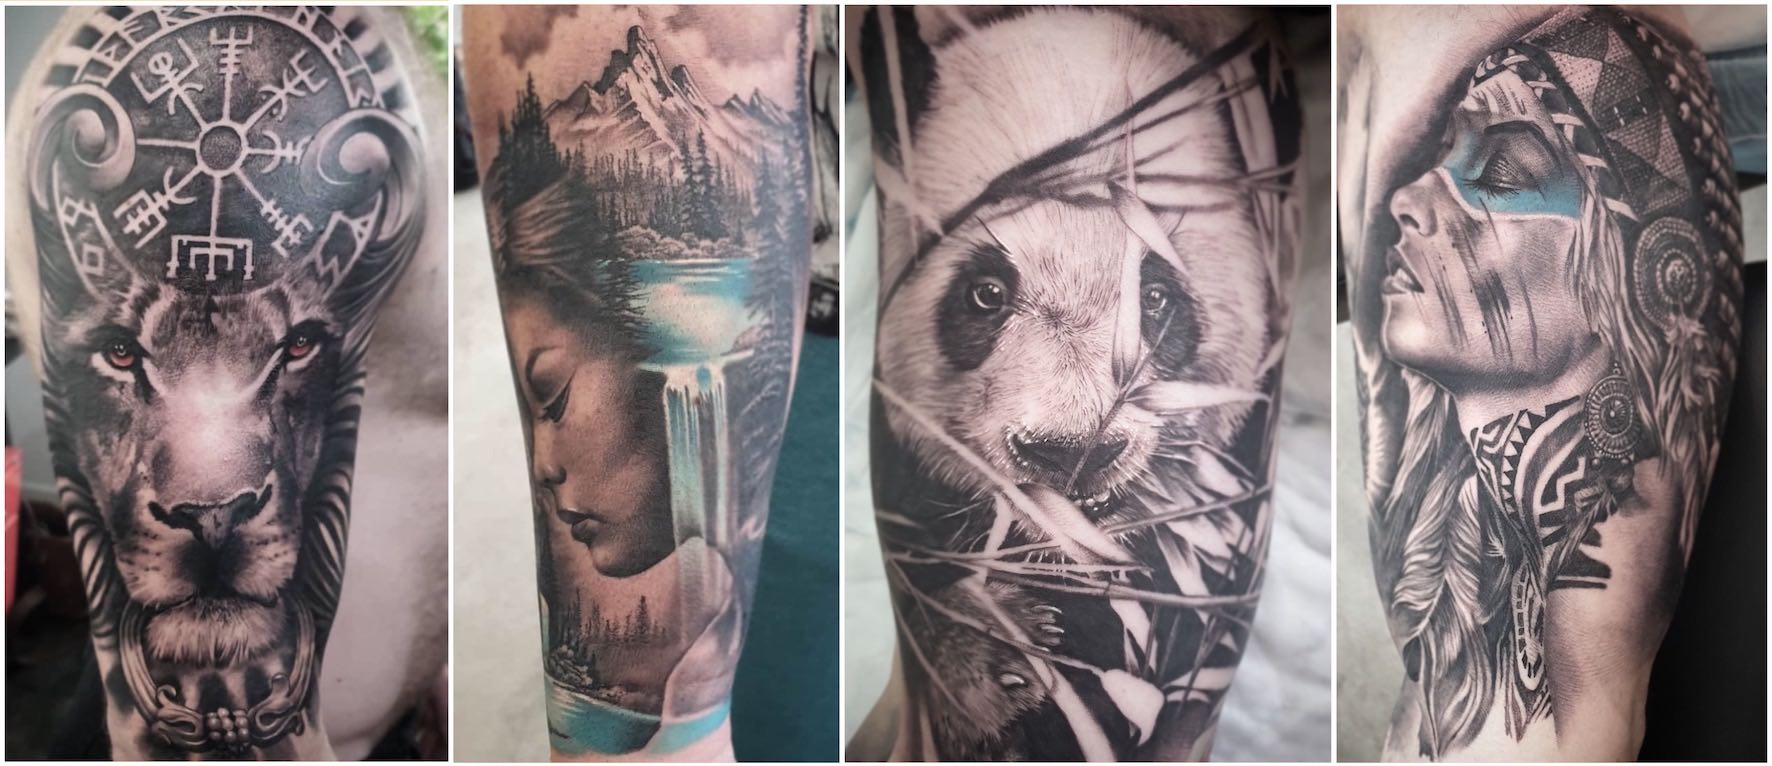 A selection of Japanese tattoo done by Bryan Du Rand